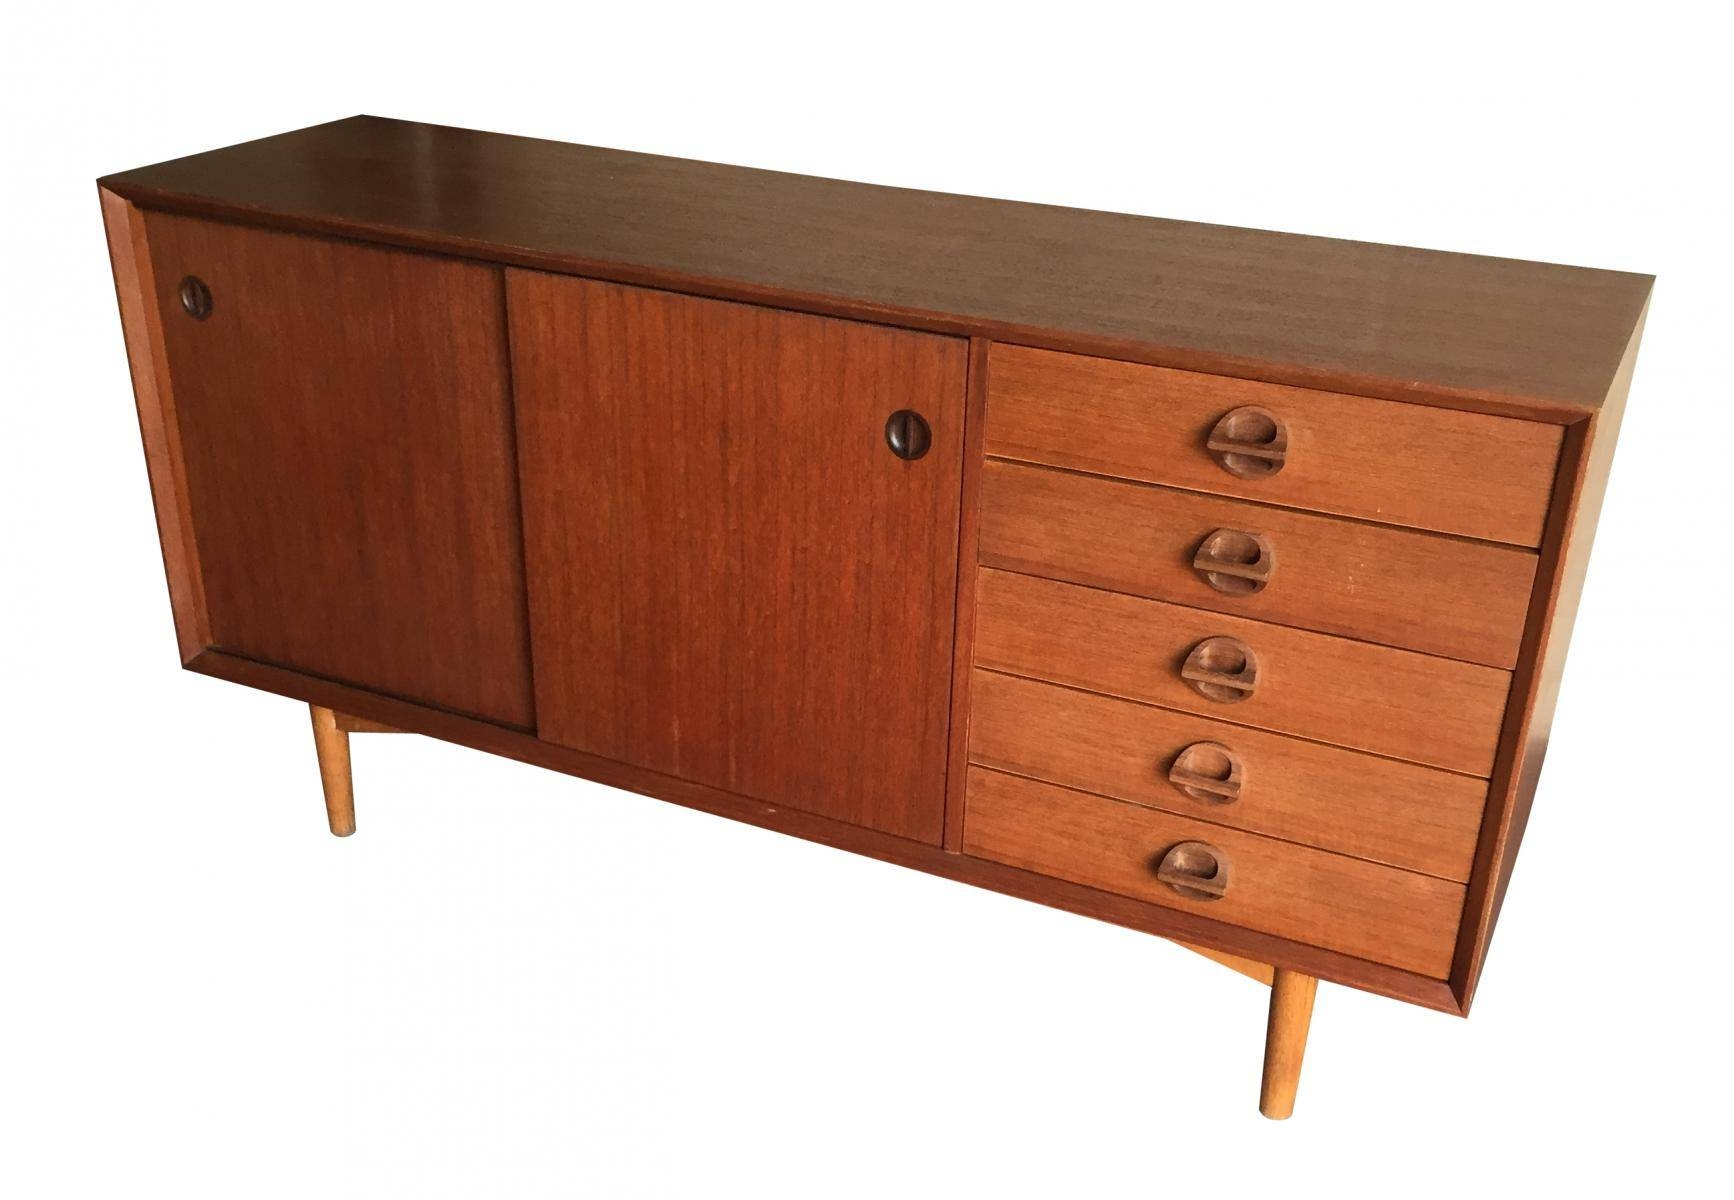 Vintage Sideboard With Sliding Doors, 1960S For Sale At Pamono With Regard To Most Recently Released Vintage Sideboards (#12 of 15)